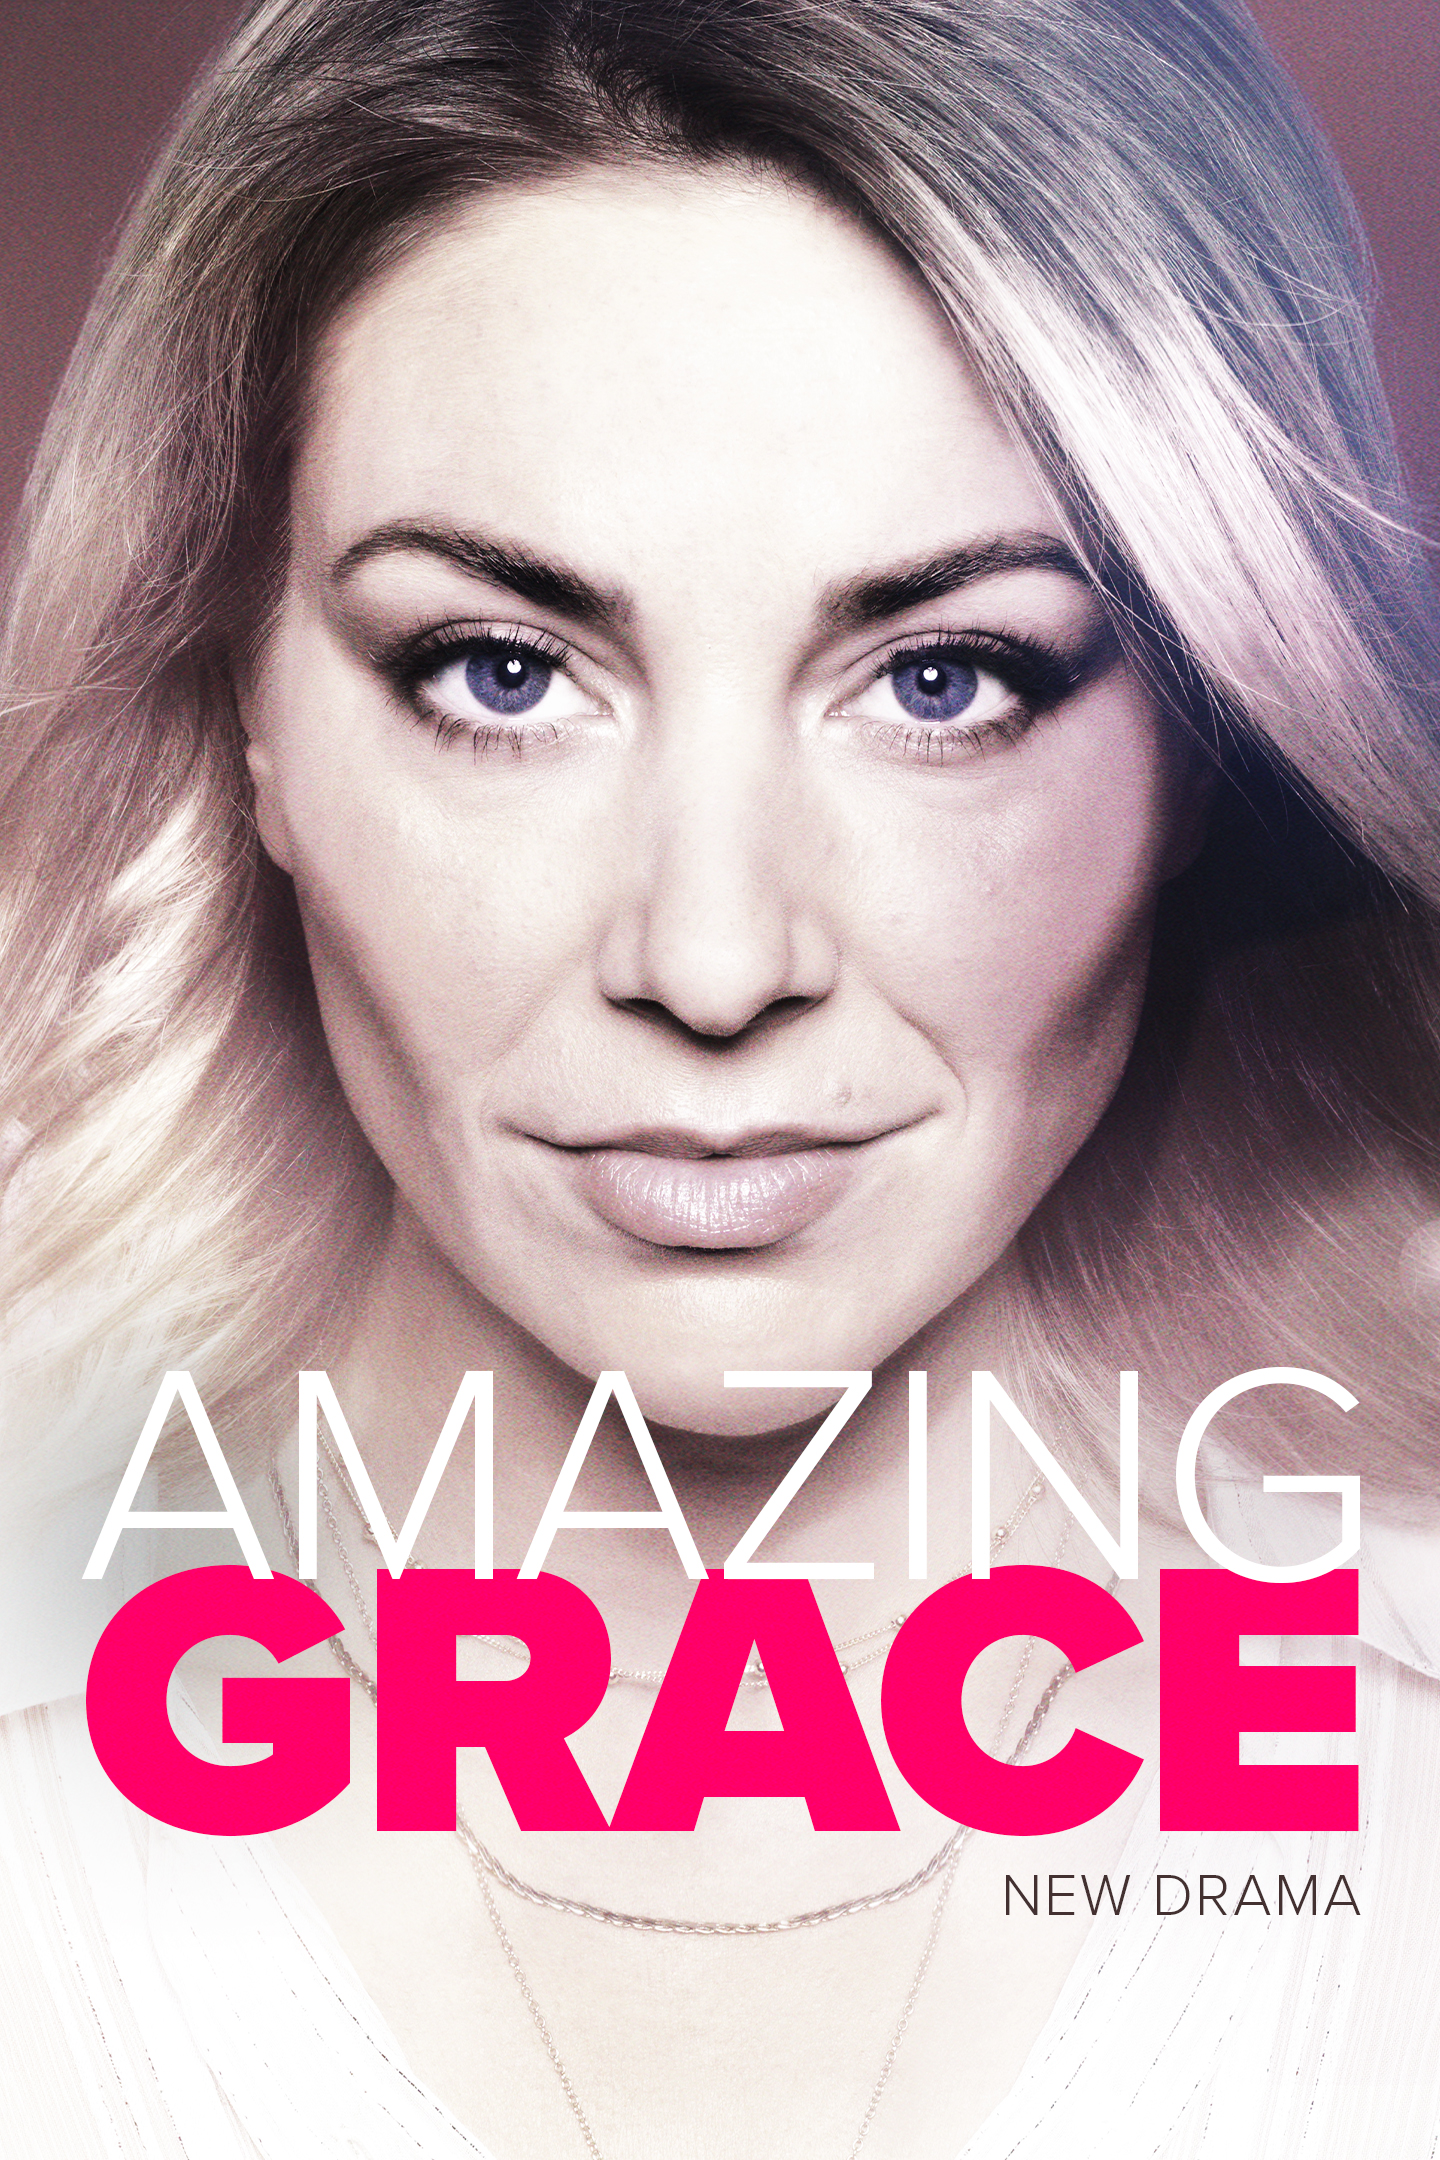 AMAZING GRACE PREMIERES WEDNESDAY 3 MARCH AT 9.00 PM ON NINE